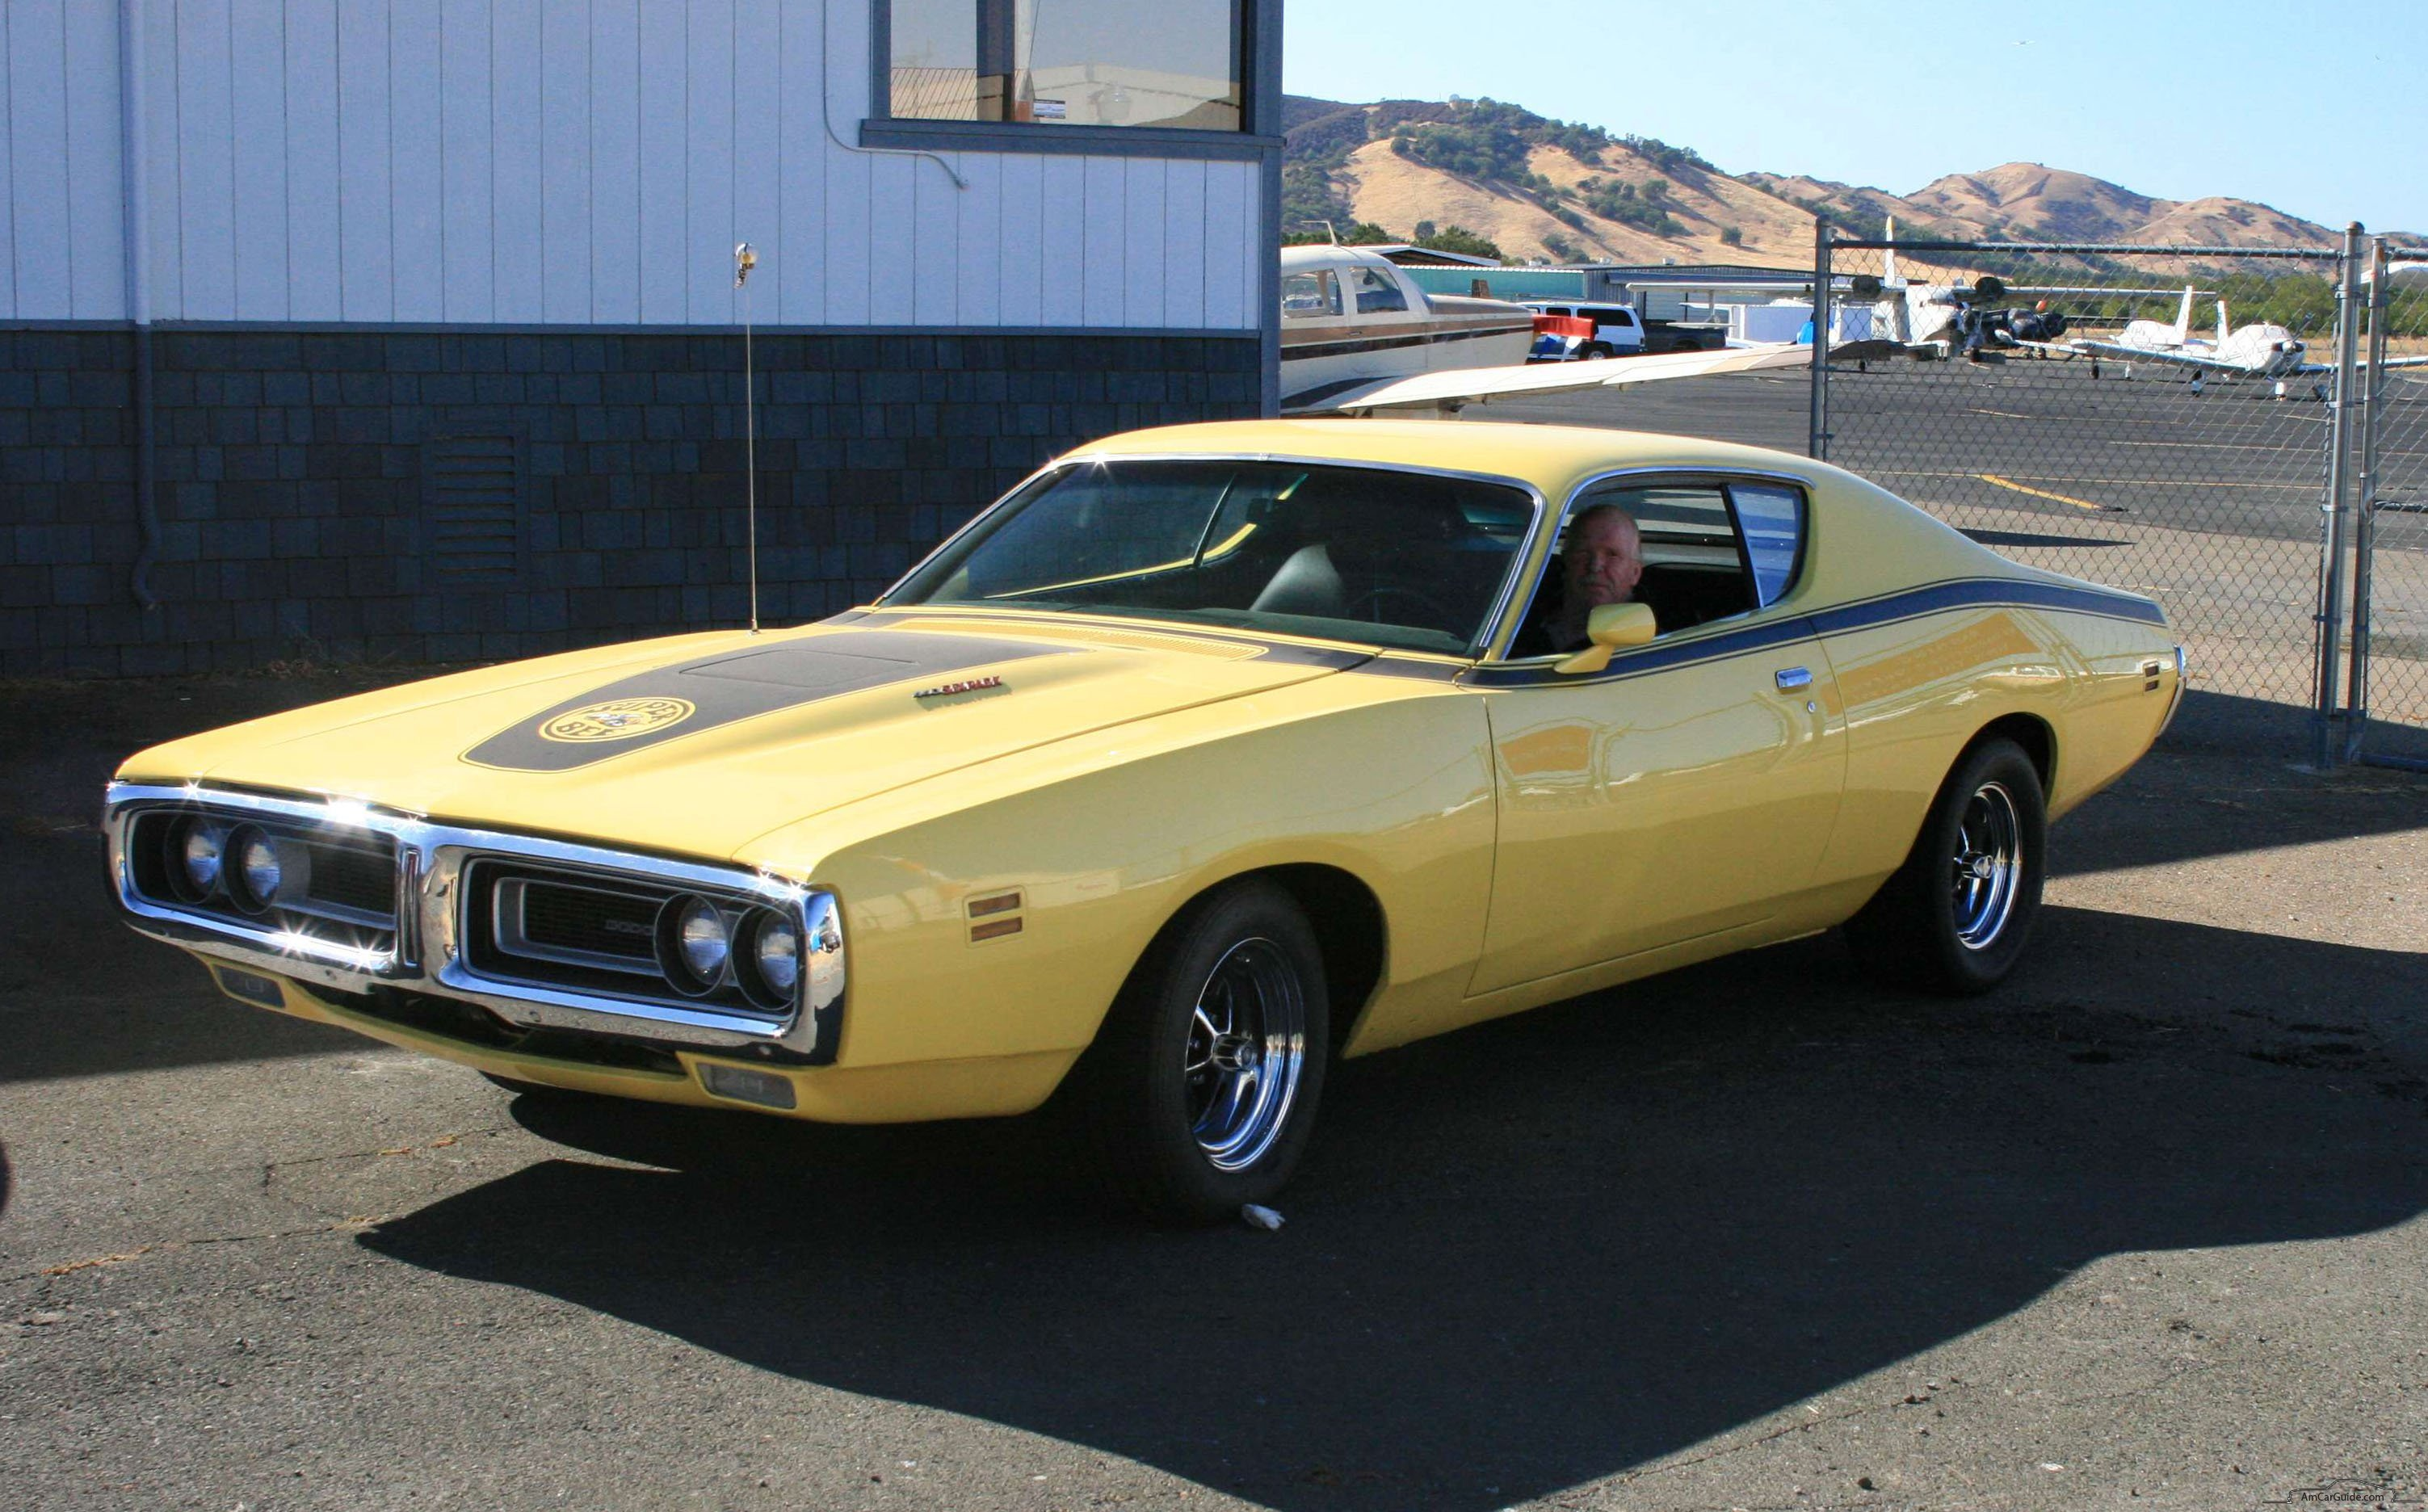 DODGE SUPER BEE, A RARE MUSCLE CAR - Image #29